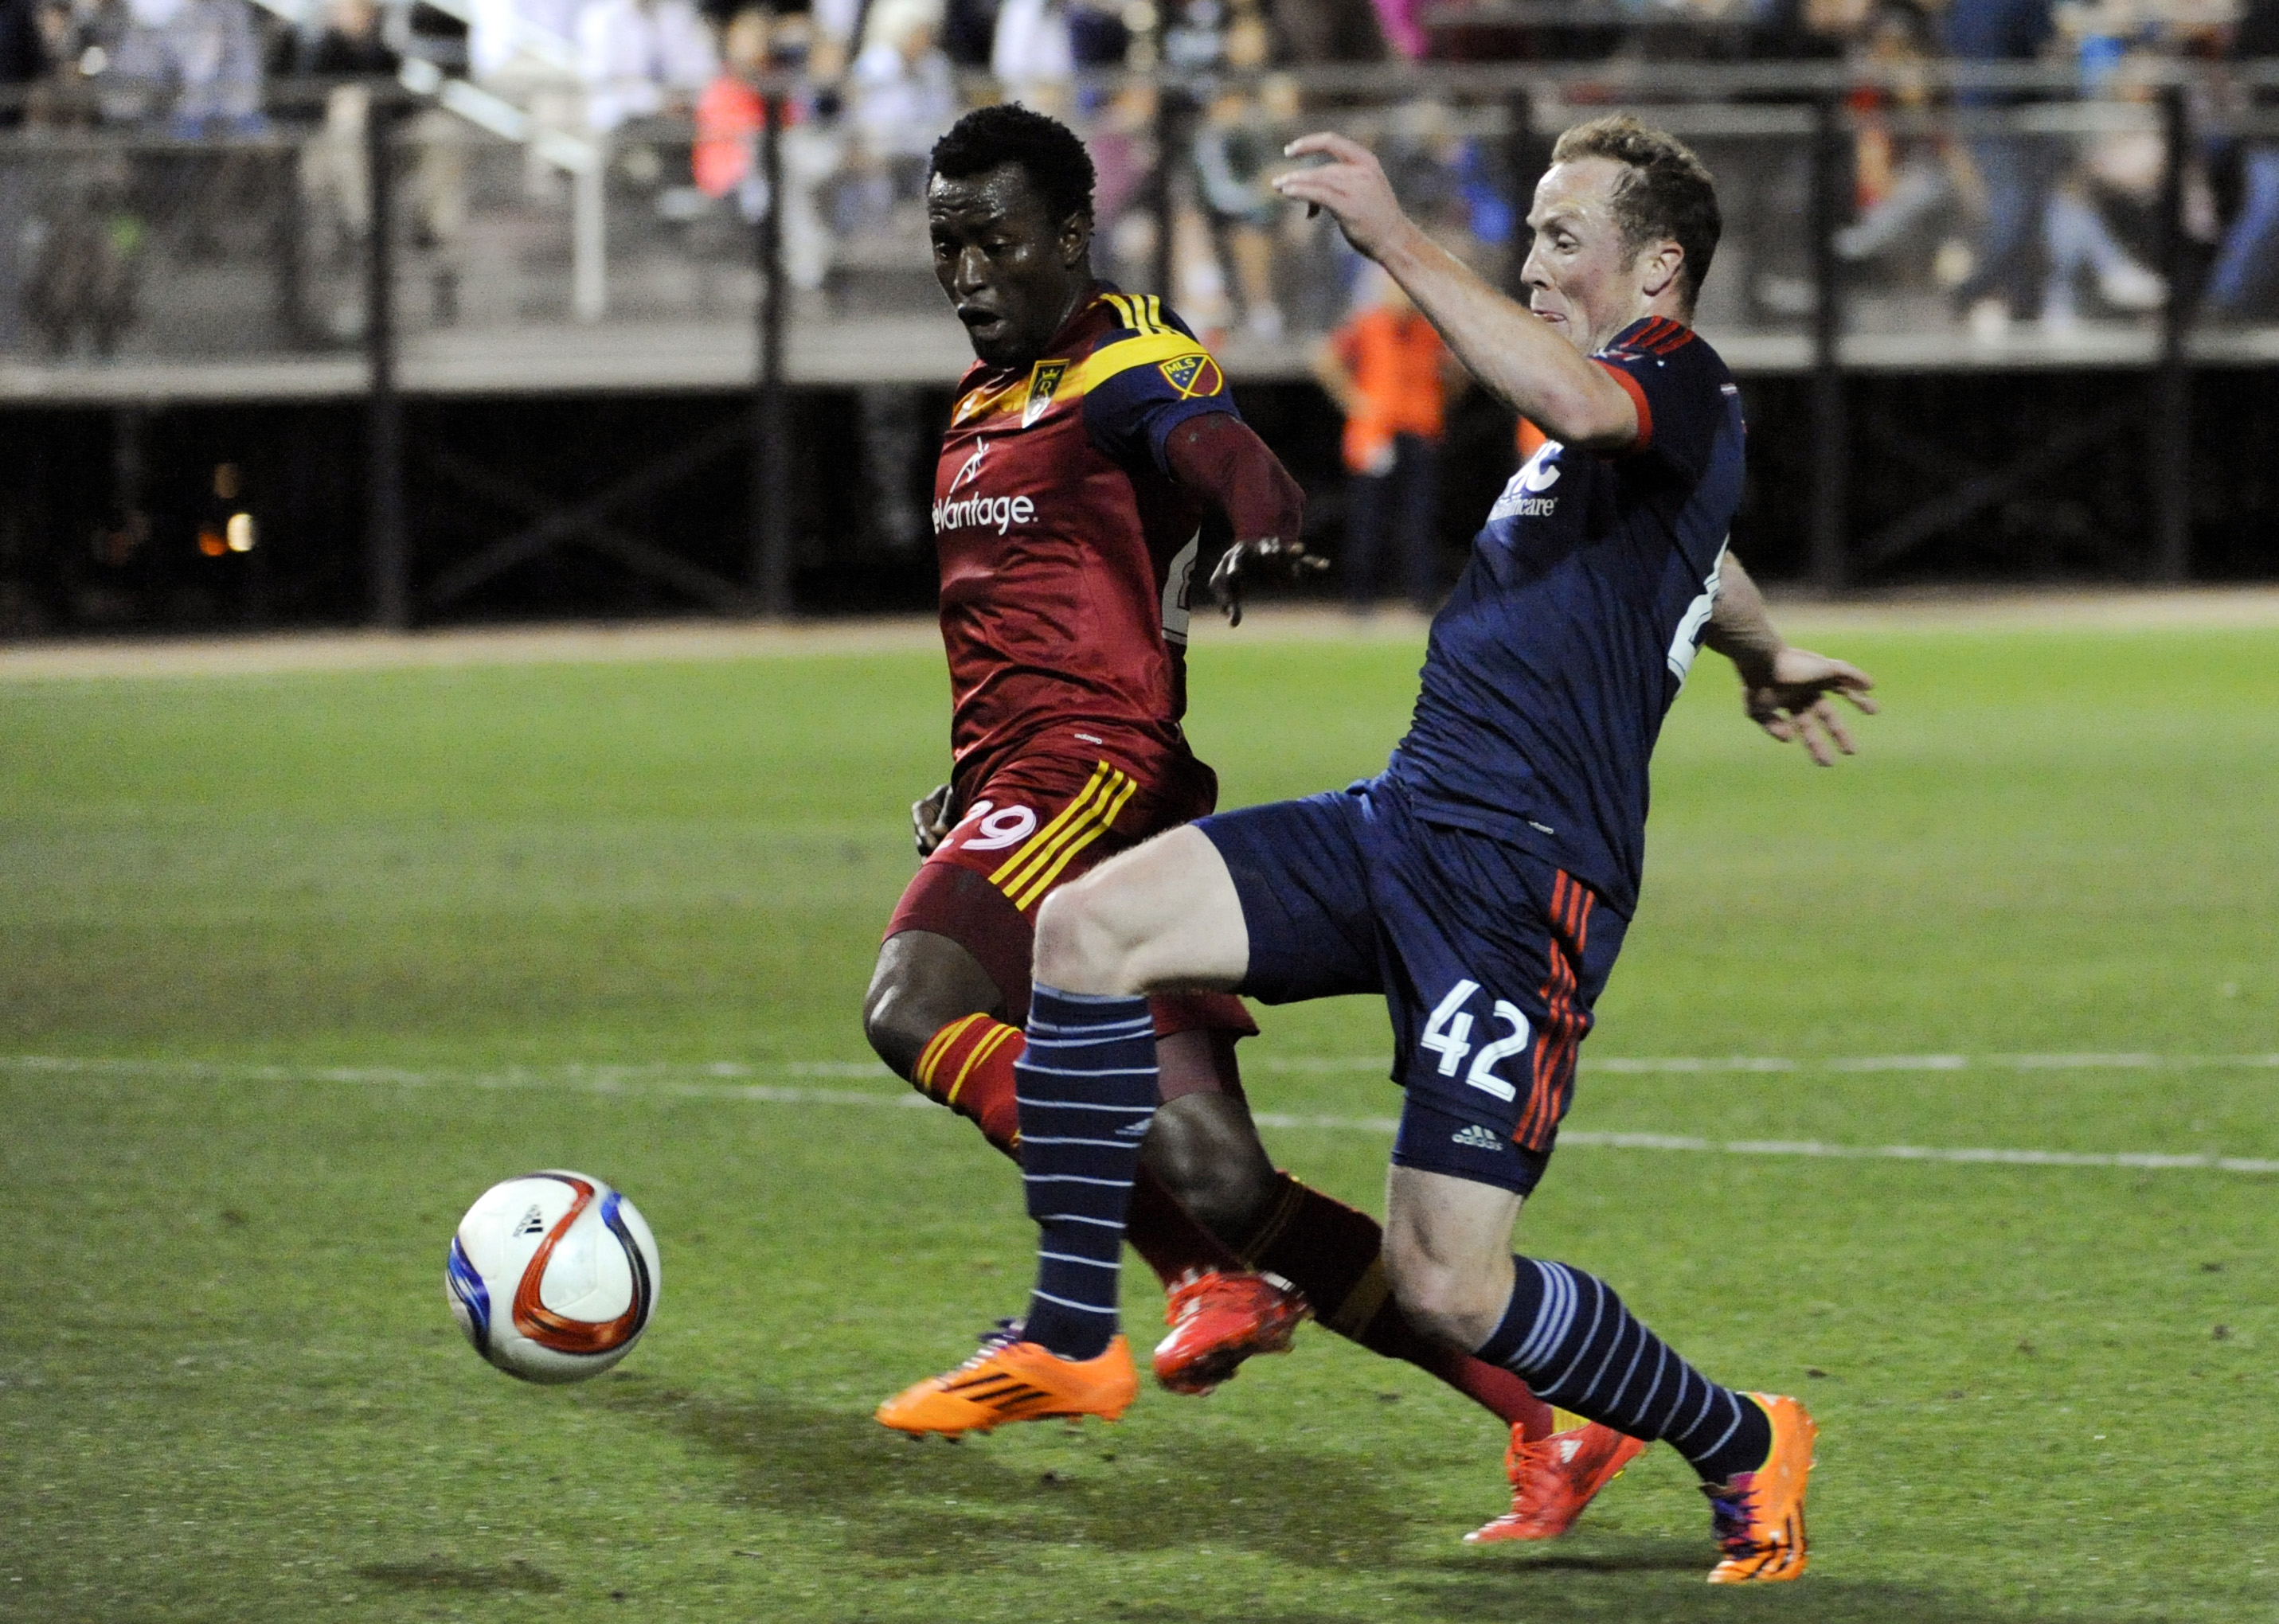 Timi Mulgrew, loaned to Rochester from New England this week, will look to make an immediate impact.